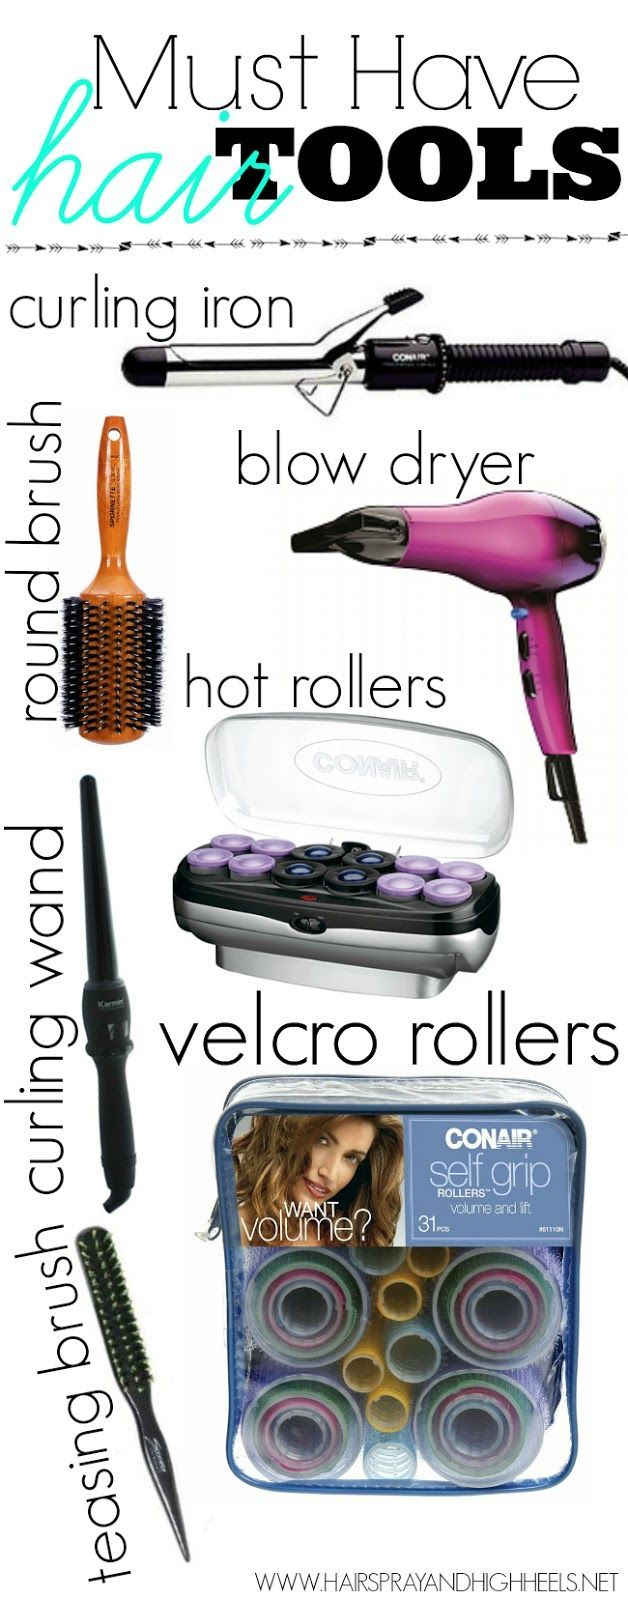 Must Have Hair Tools #Hair #HairCare #HairTools #HairStyles